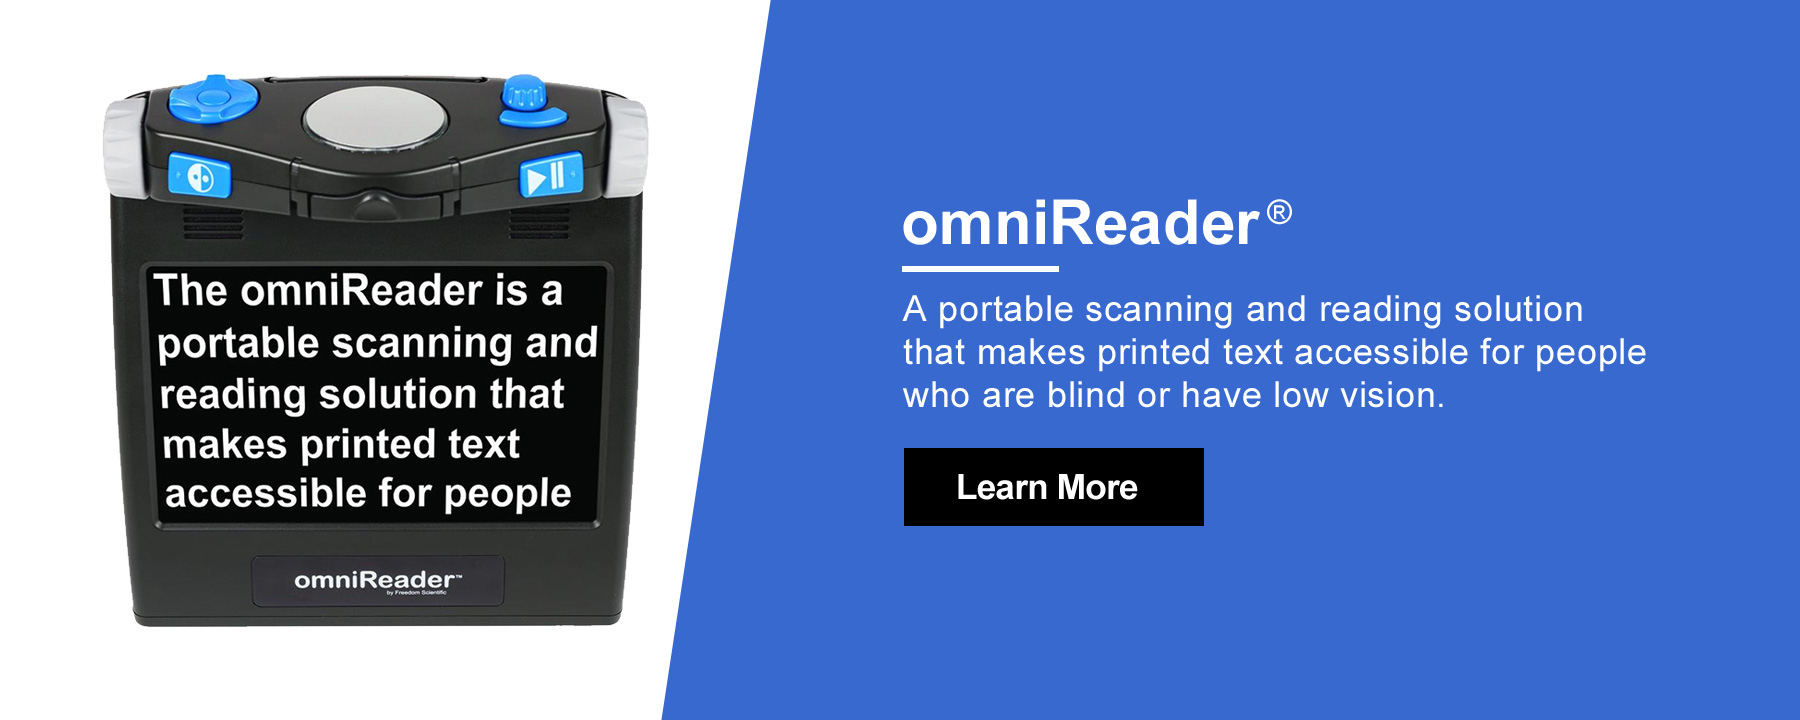 omniReader is a portable scanning and reading solution that makes printed text accessible for people who are blind or have low vision.